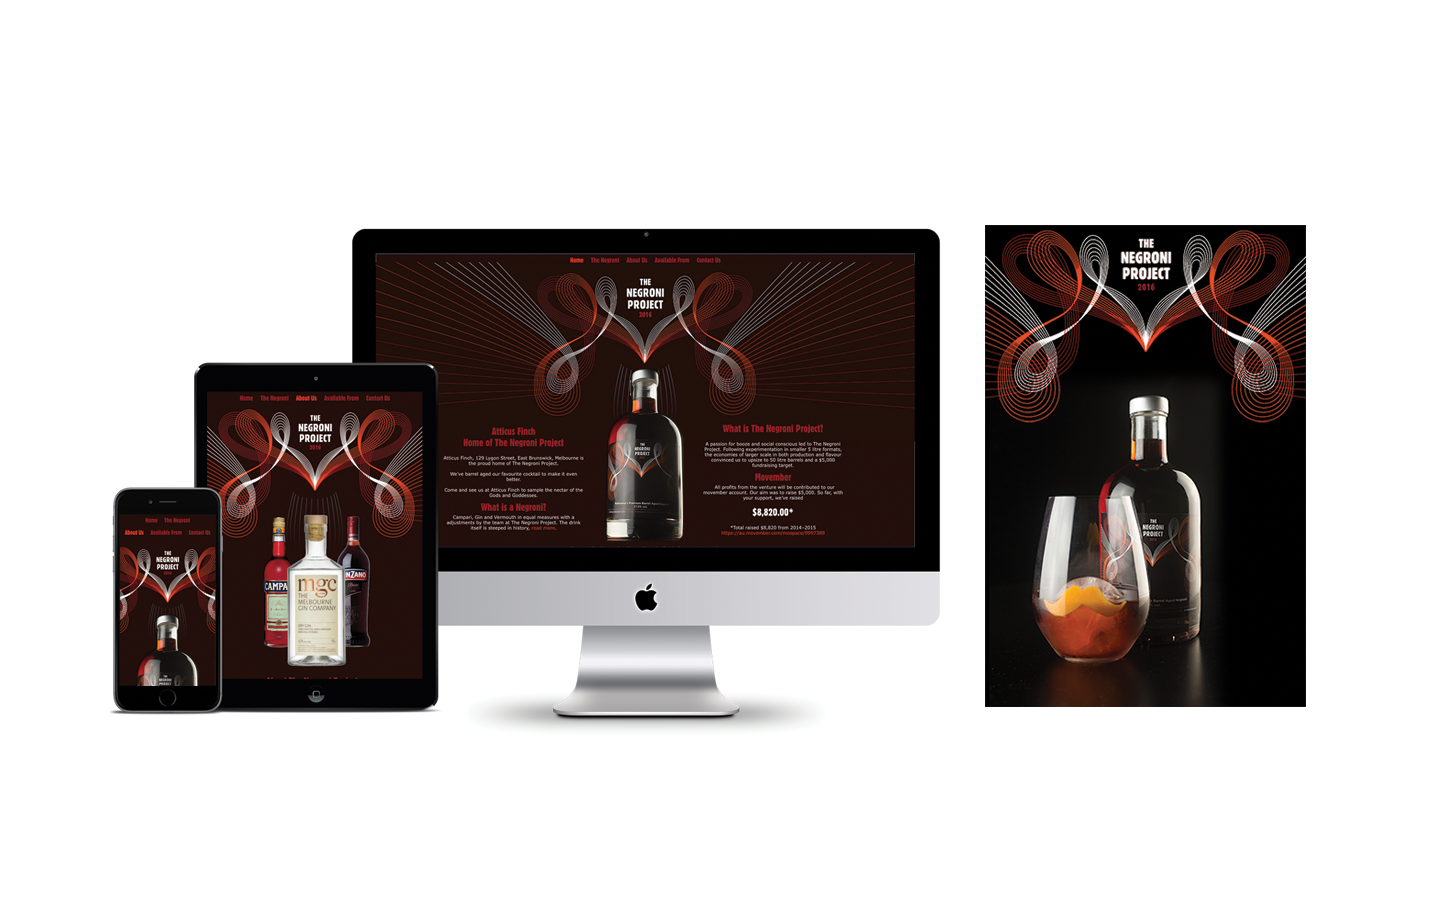 WordPress Website Design Concept for The Negroni Project